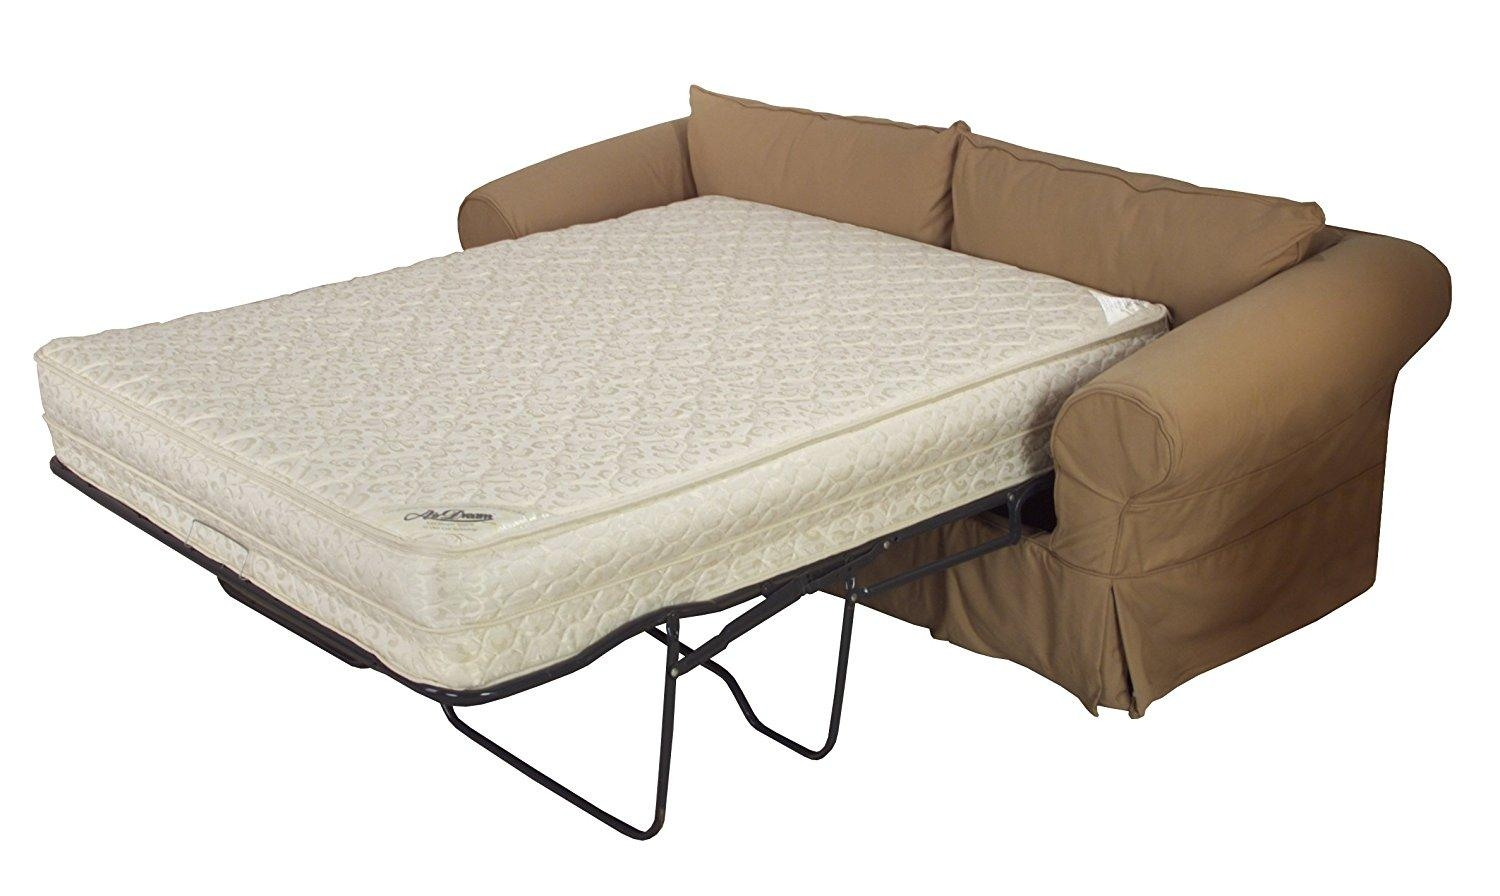 Sheets For Sofa Bed Mattress | Sofa Gallery | Kengire Inside Sofa Beds Sheets (Image 4 of 20)